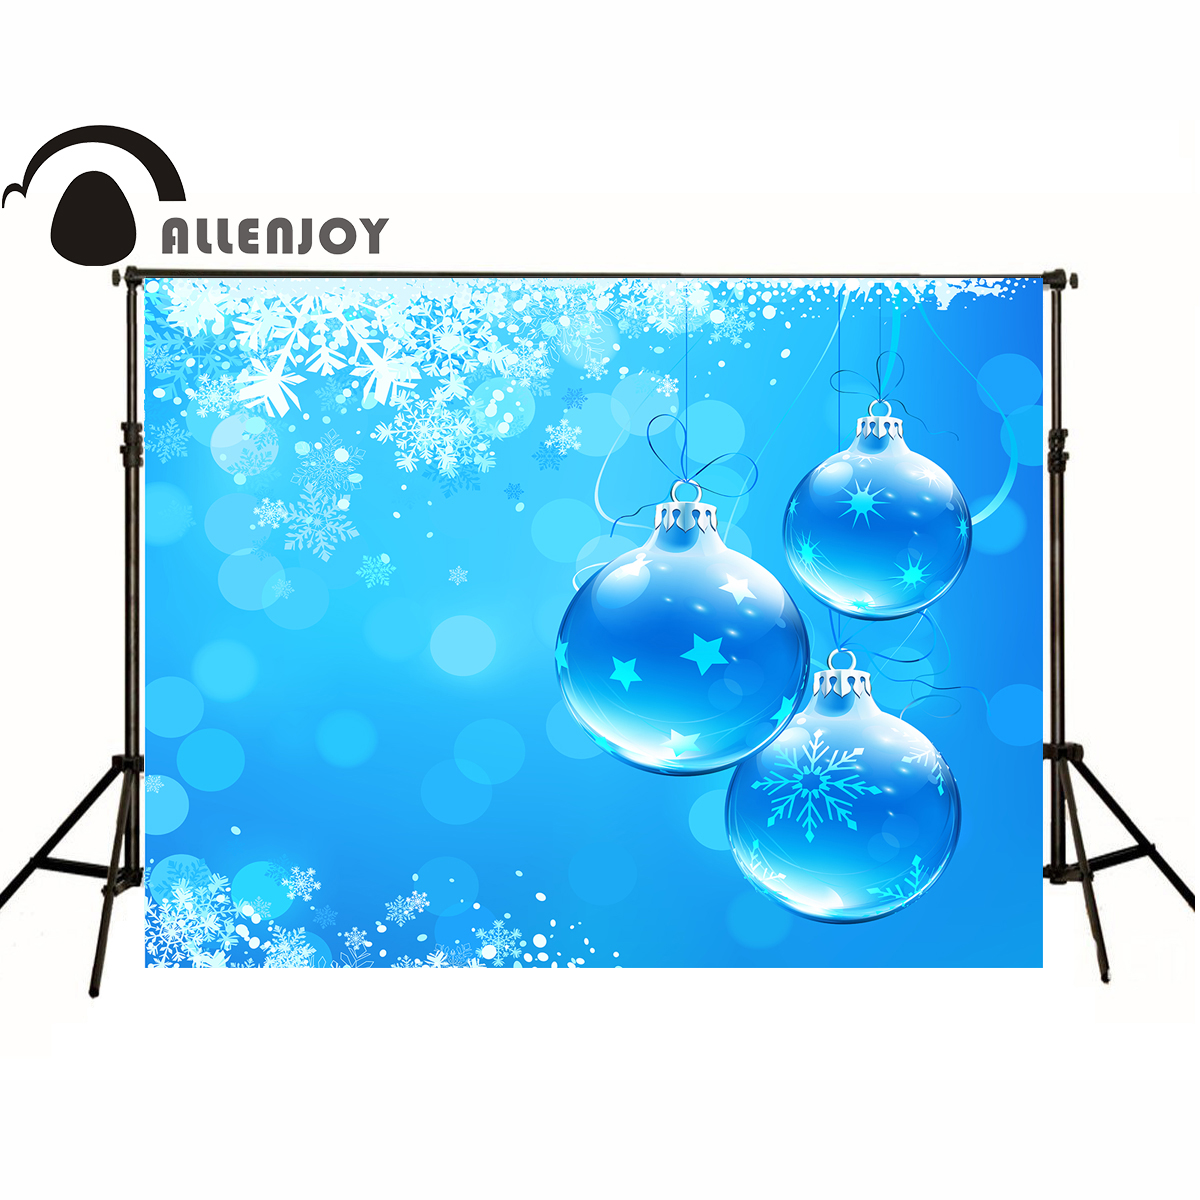 AllEnjoy photography Christmas background Light blue snowflakes stars xmas beautiful romantic Professional photography backdrops(China (Mainland))